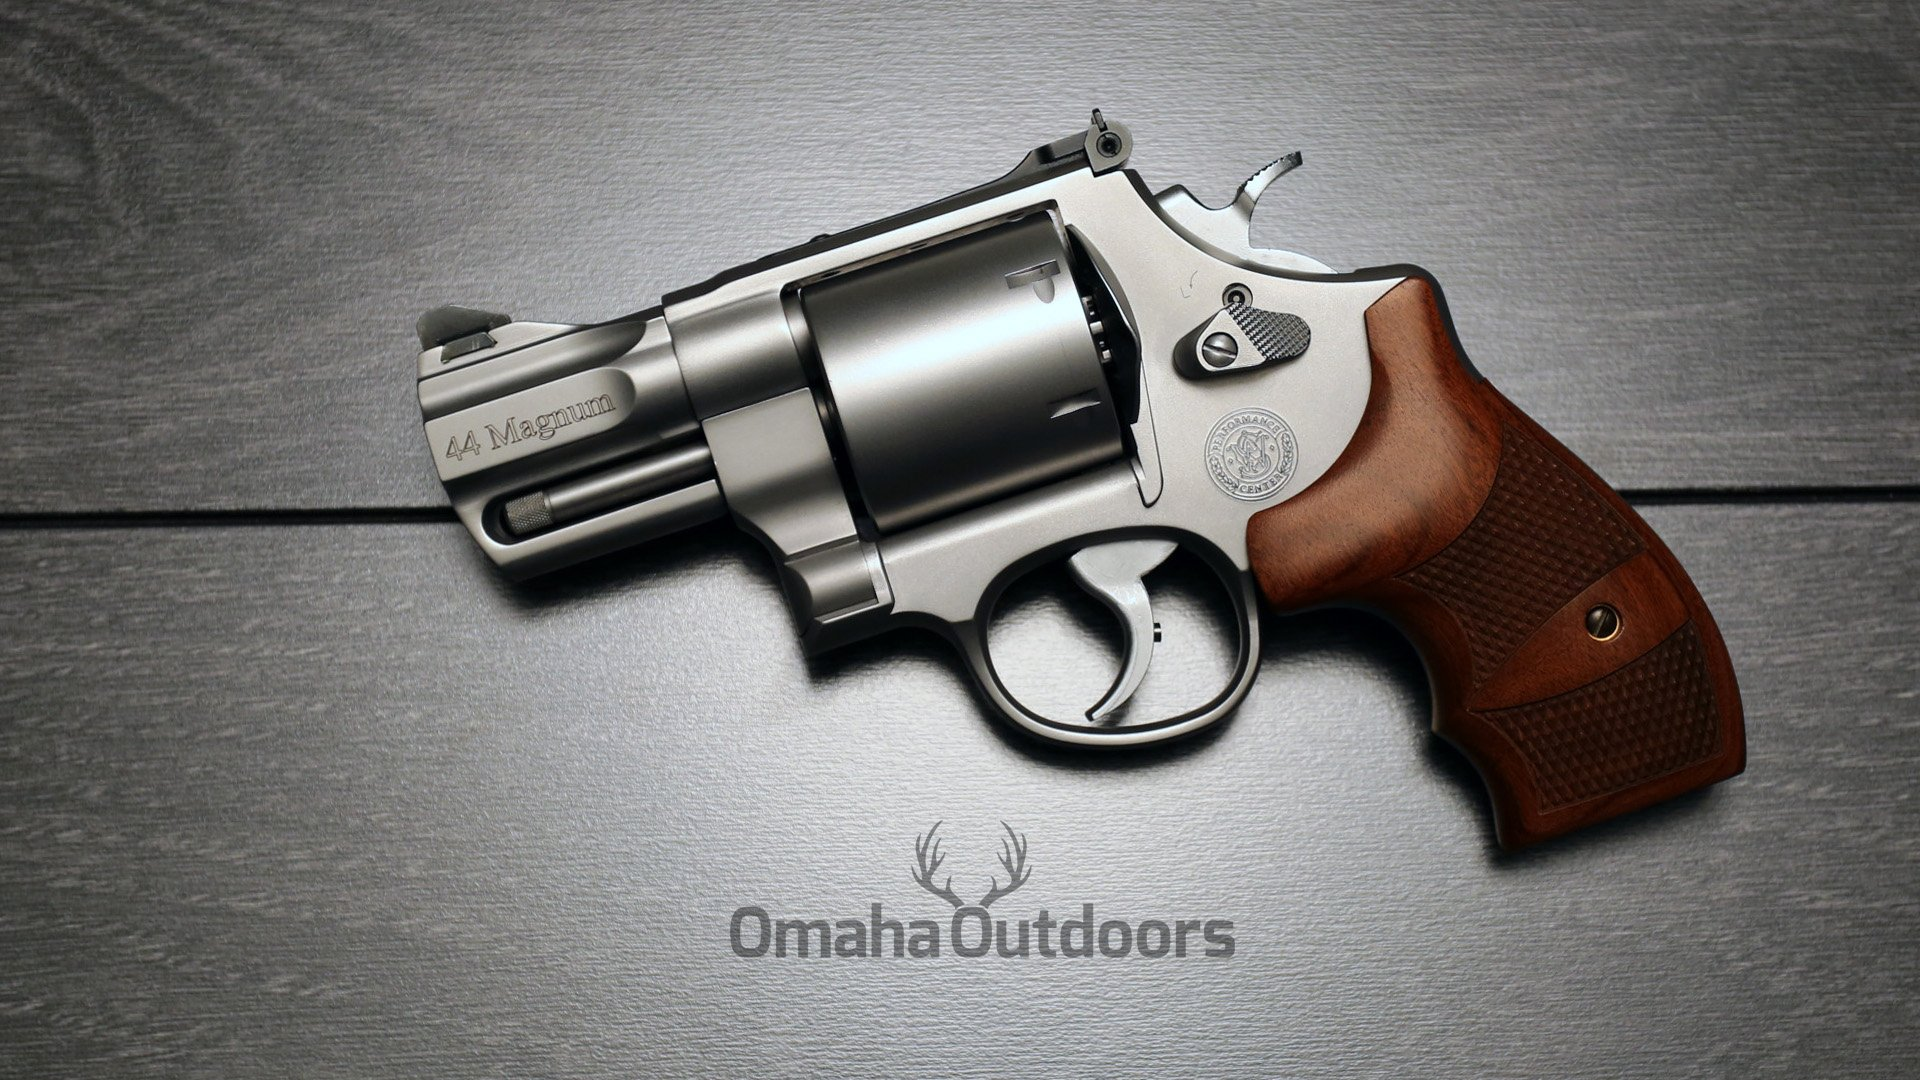 Gun Review: Smith & Wesson 629 Performance Center Snub Nose Revolver